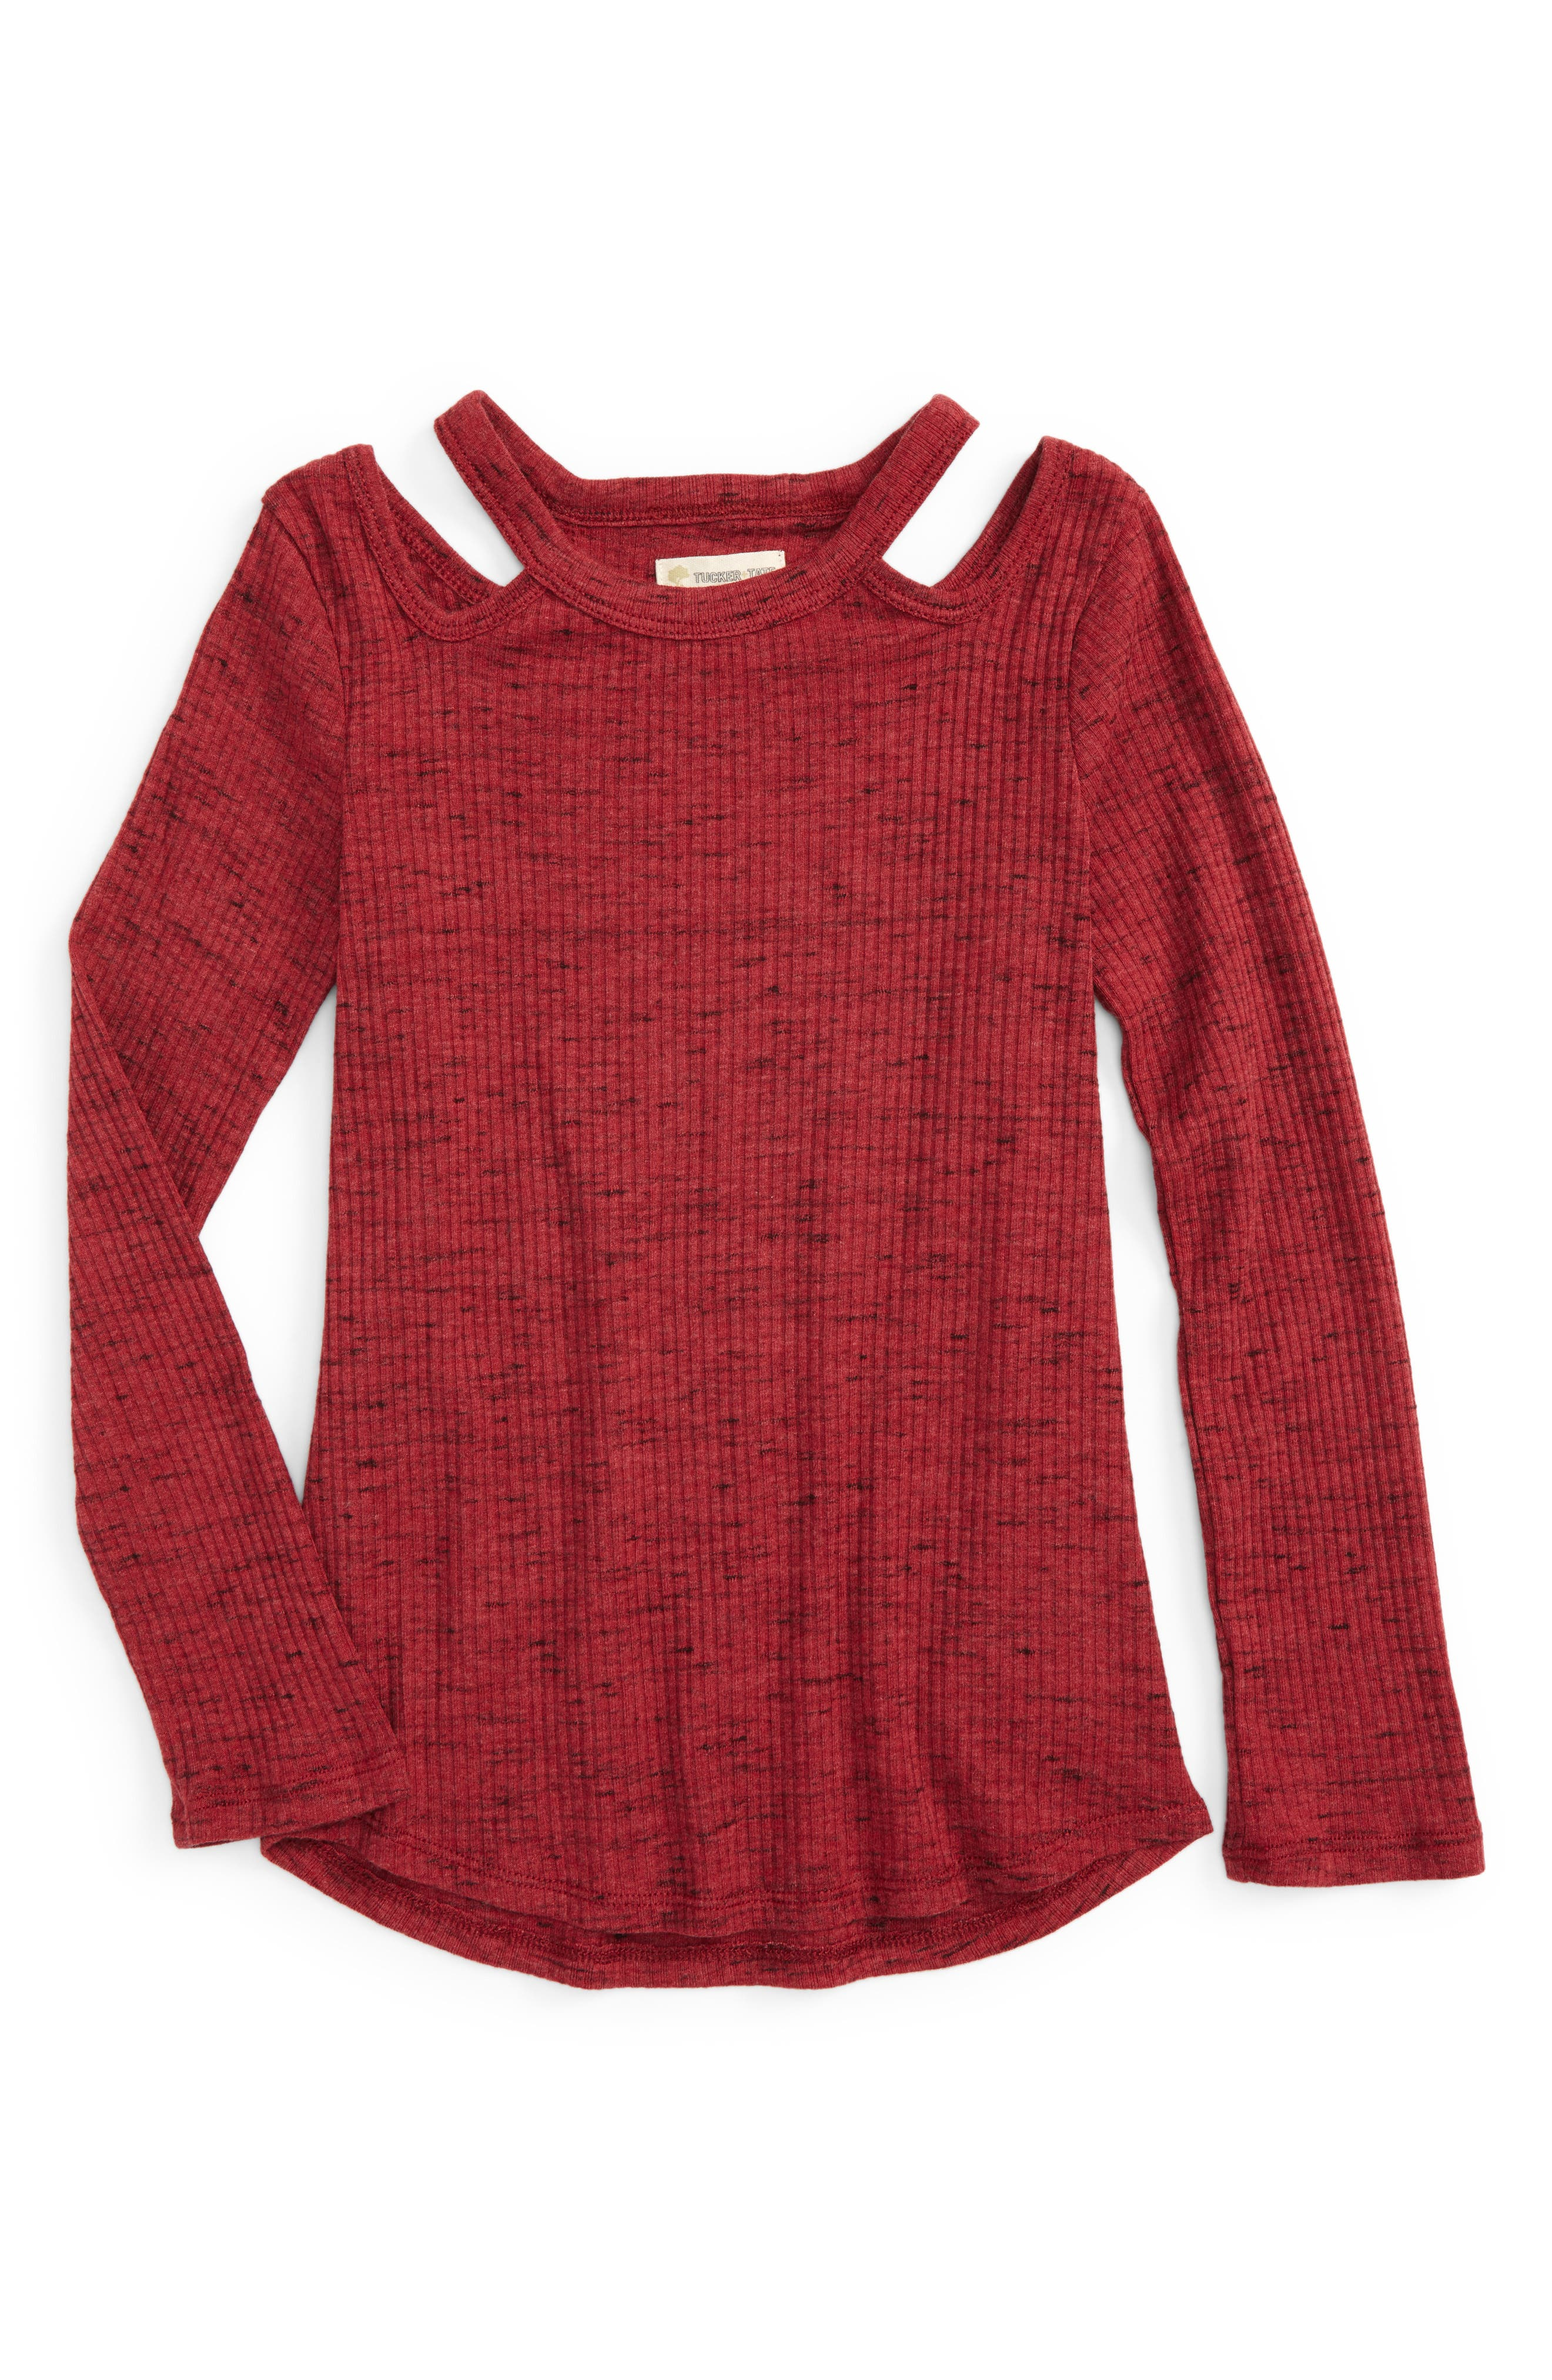 Tucker + Tate Cutout Rib Knit Tee (Big Girls)